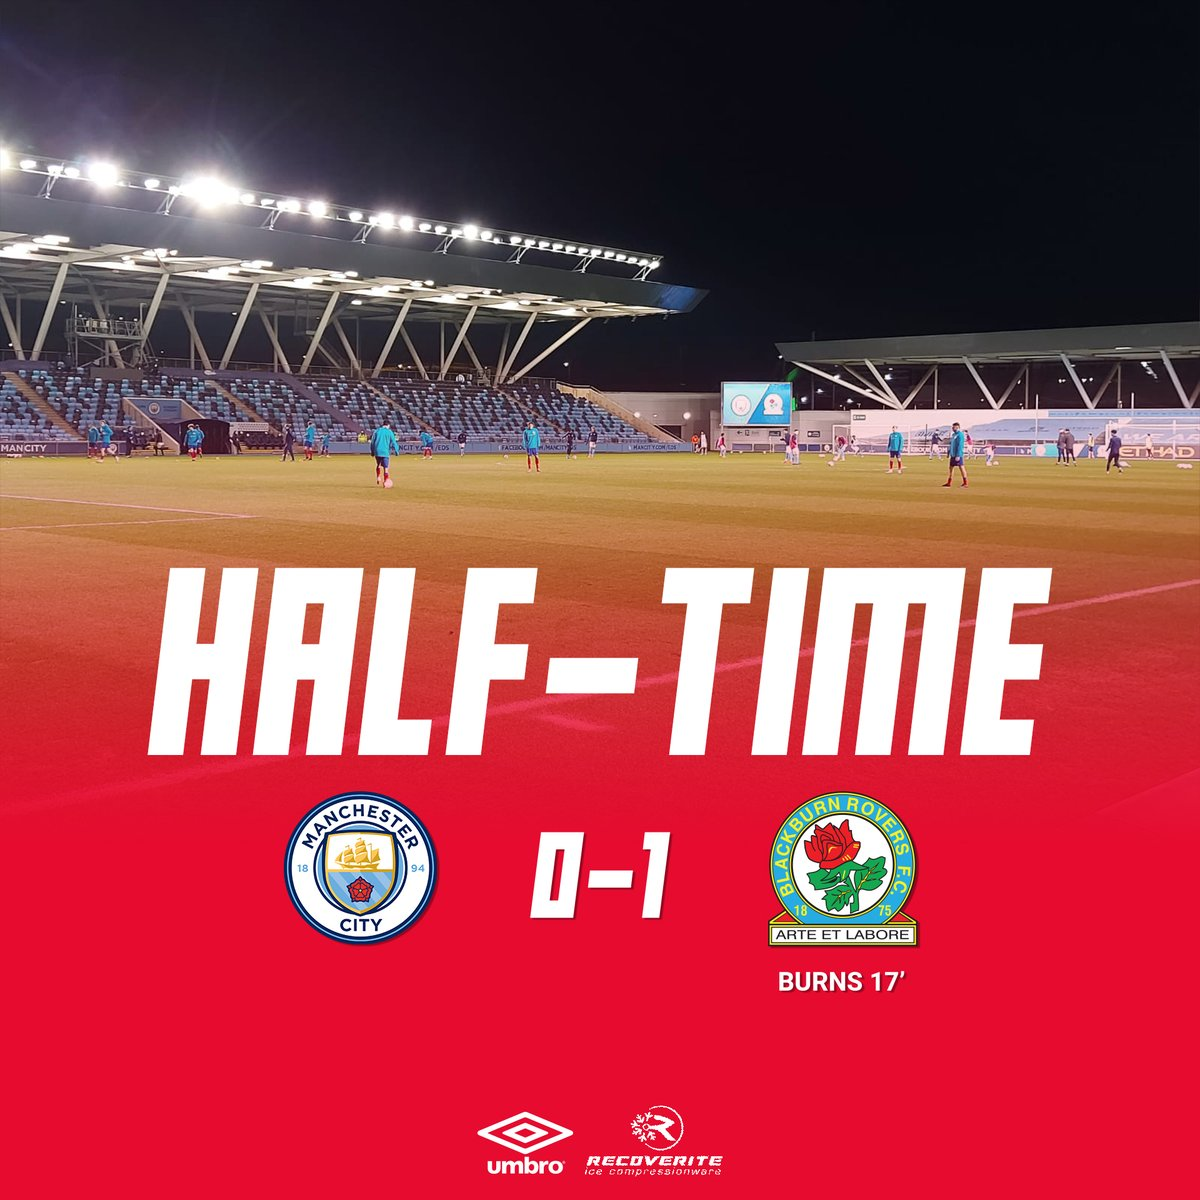 ⏱️ HT: #MCFC 0-1 Rovers  A really positive first half for the visitors, who take the advantage into the interval thanks to Burns' close range finish.  #Rovers | #PL2 🔵⚪️